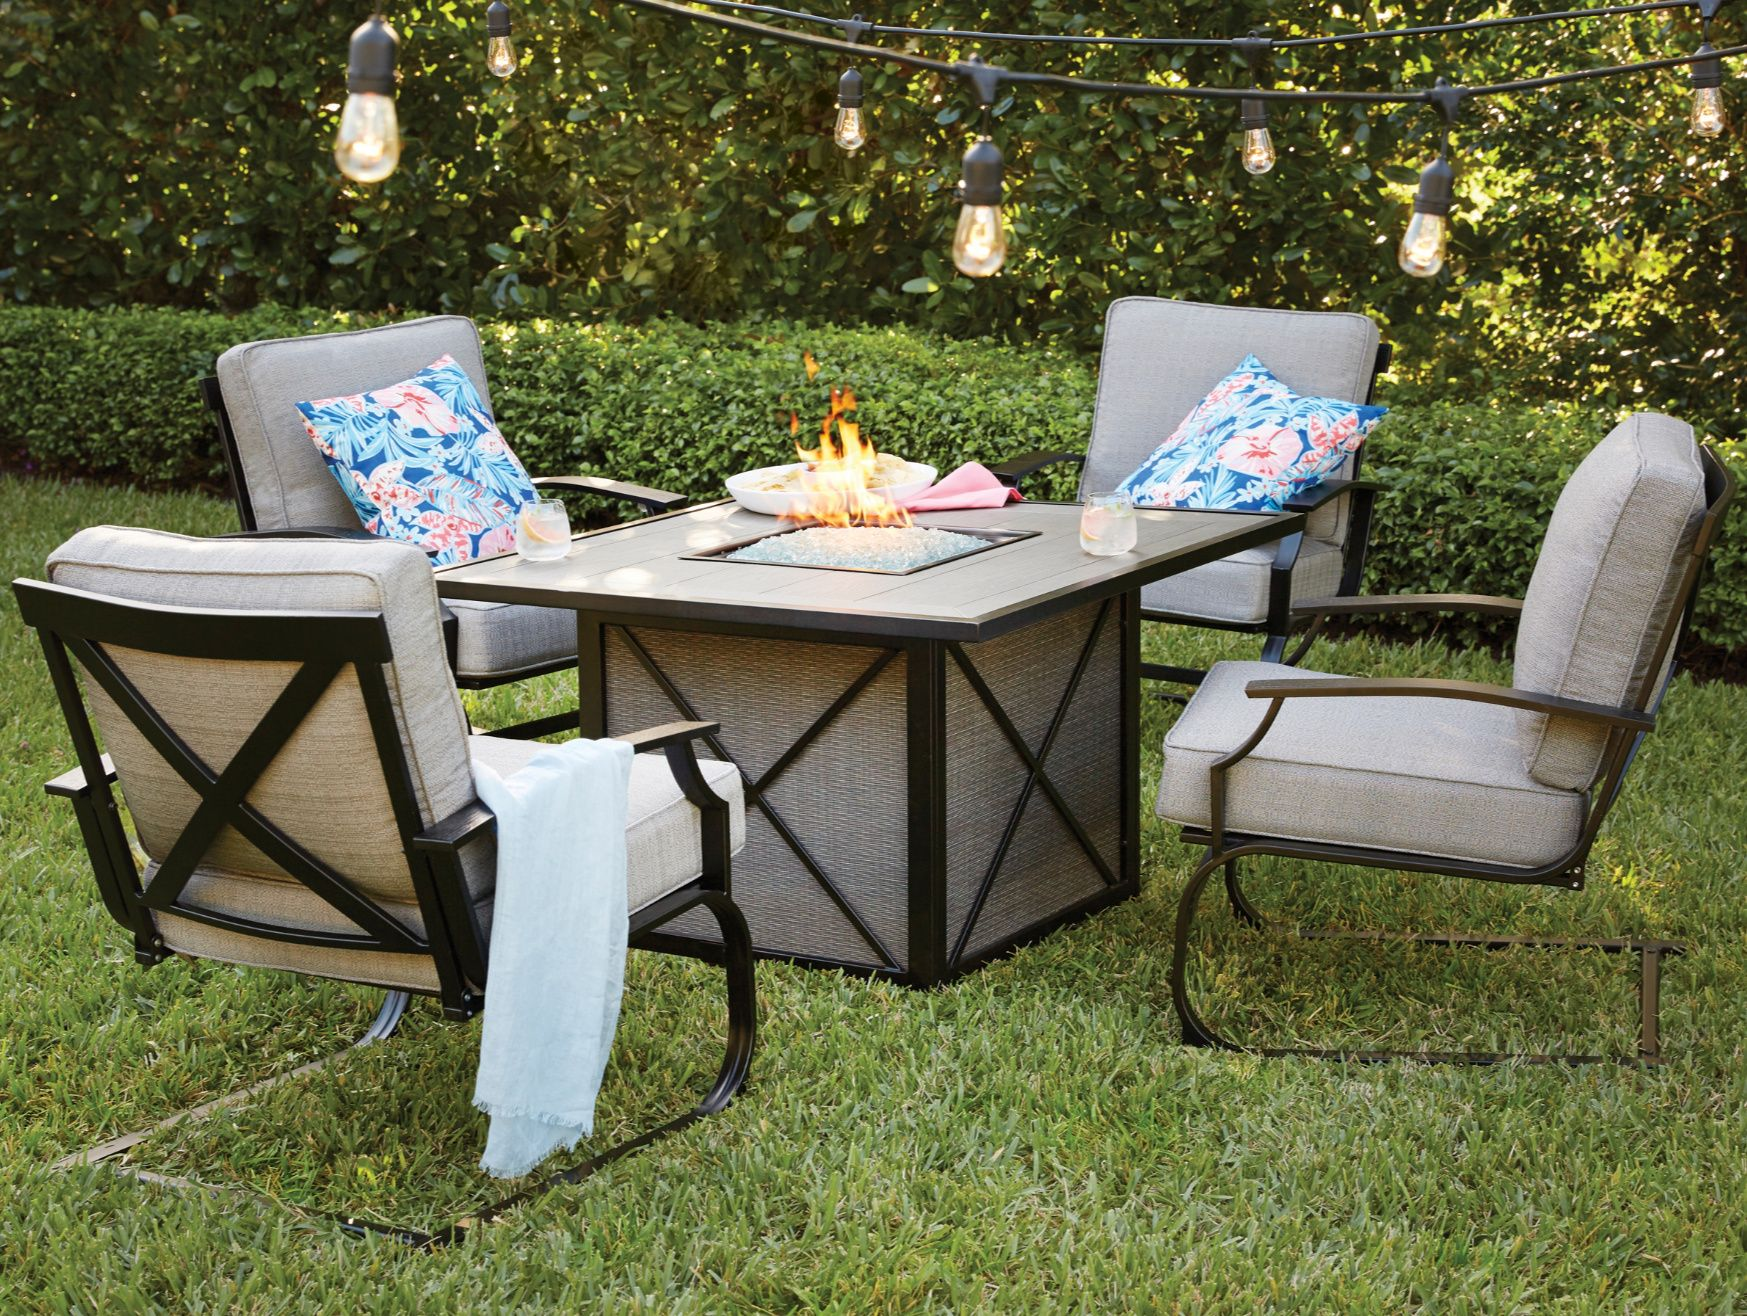 Elevate Your Outdoor Living Space With The Sonoma Firepit With